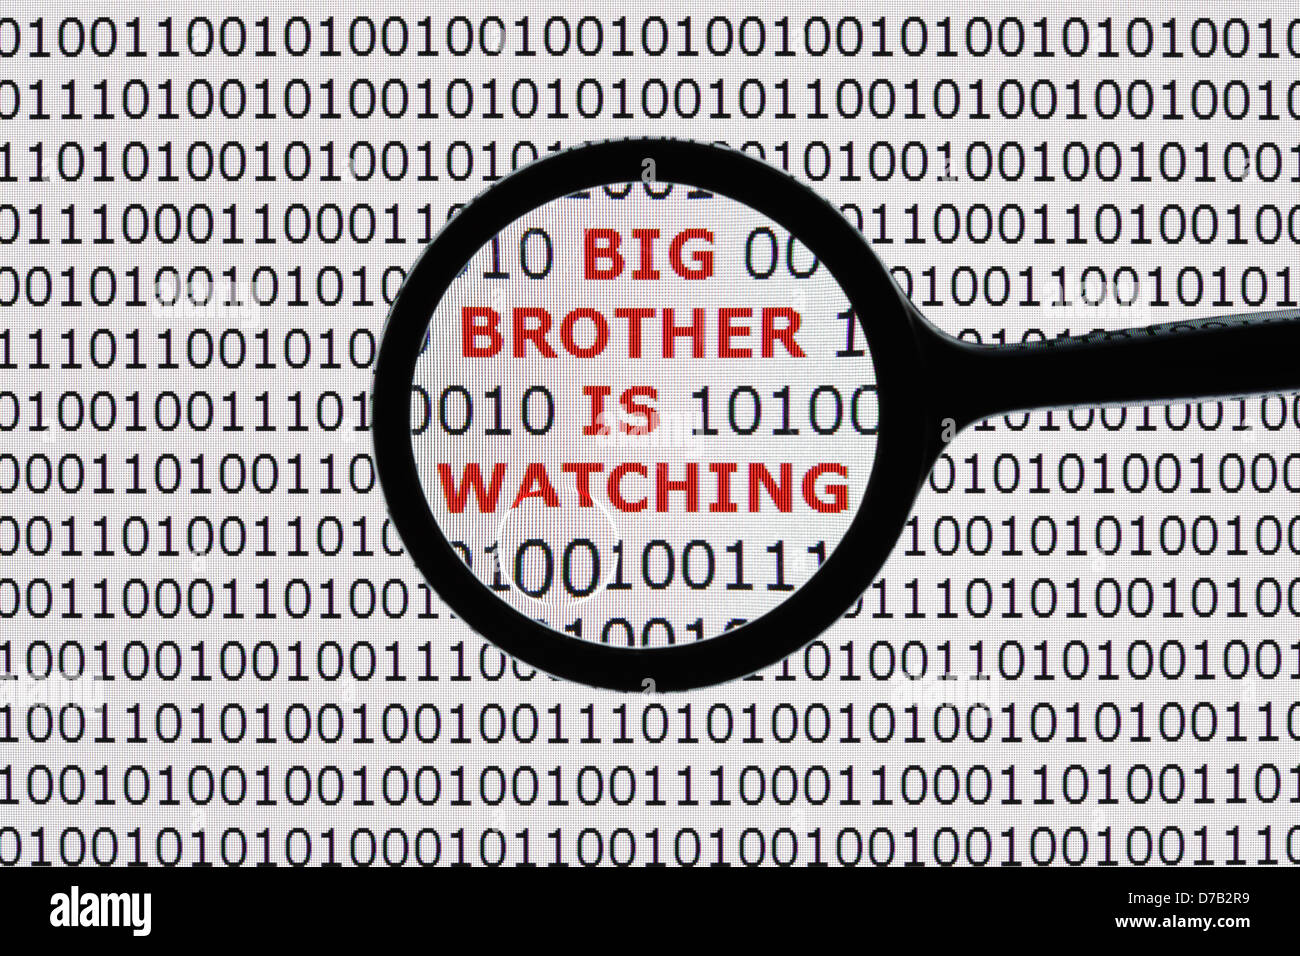 Big brother is watching - Stock Image